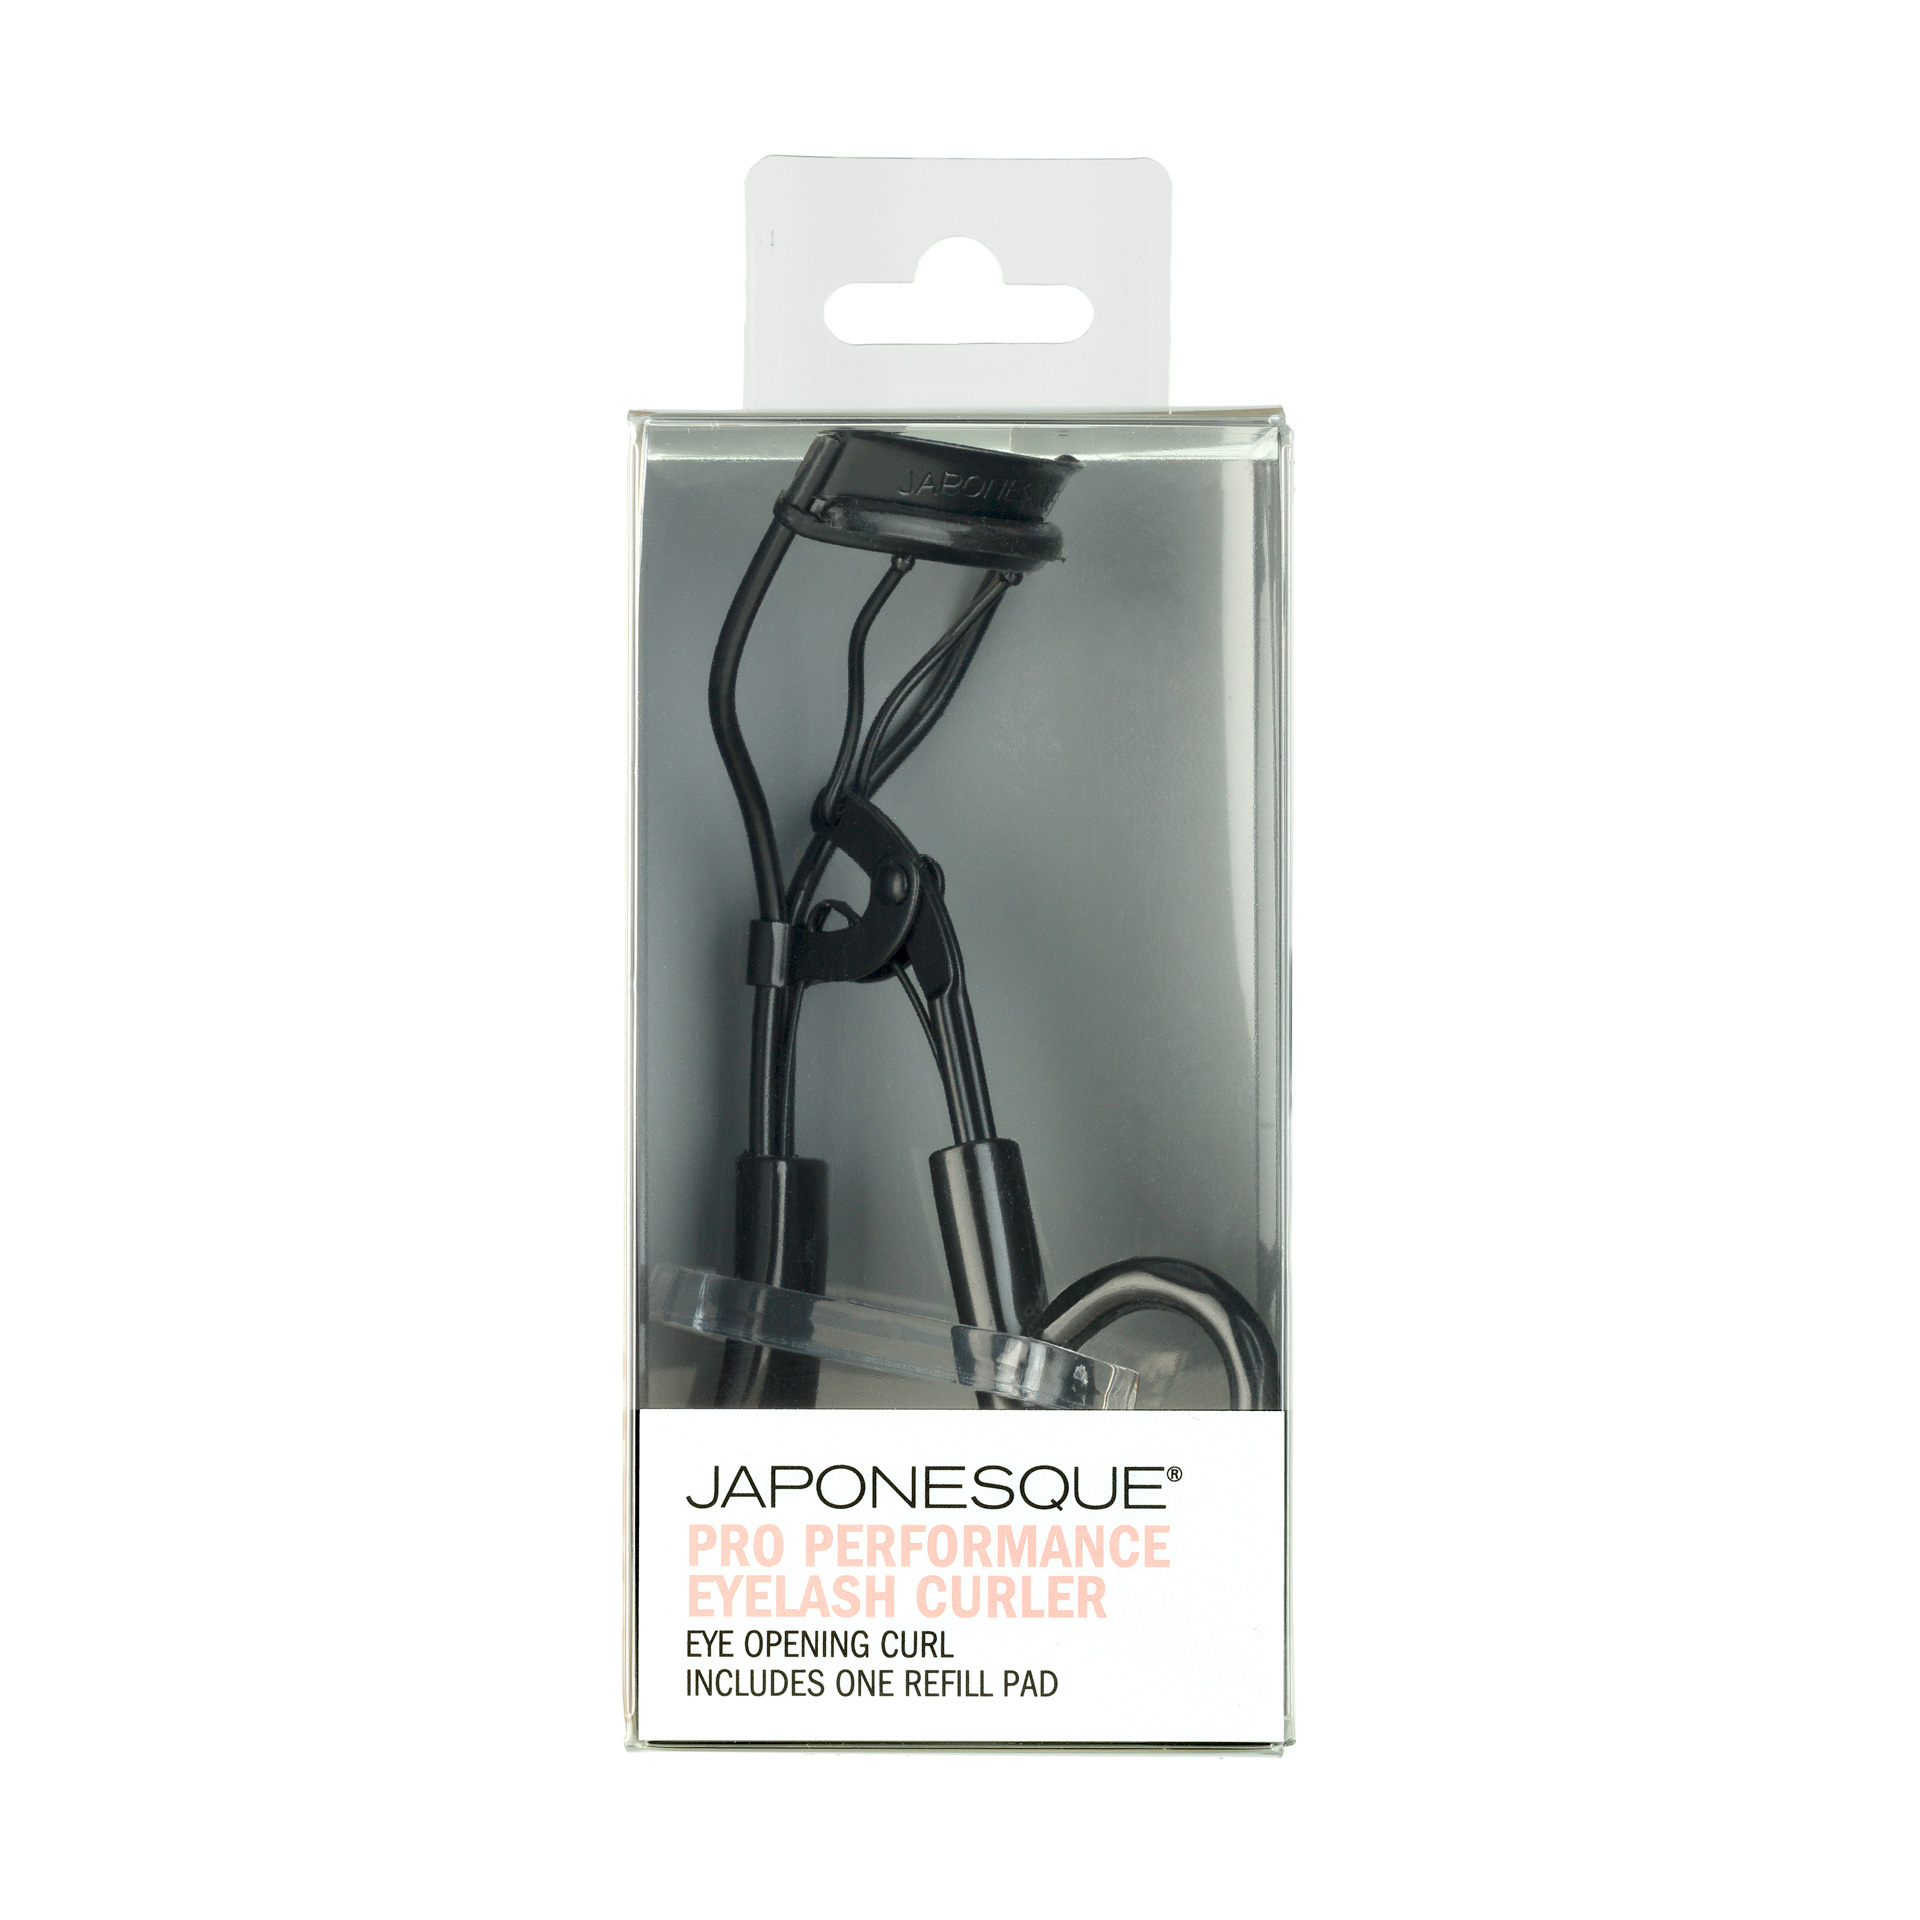 Pro Performance Eyelash Curler Japonesque